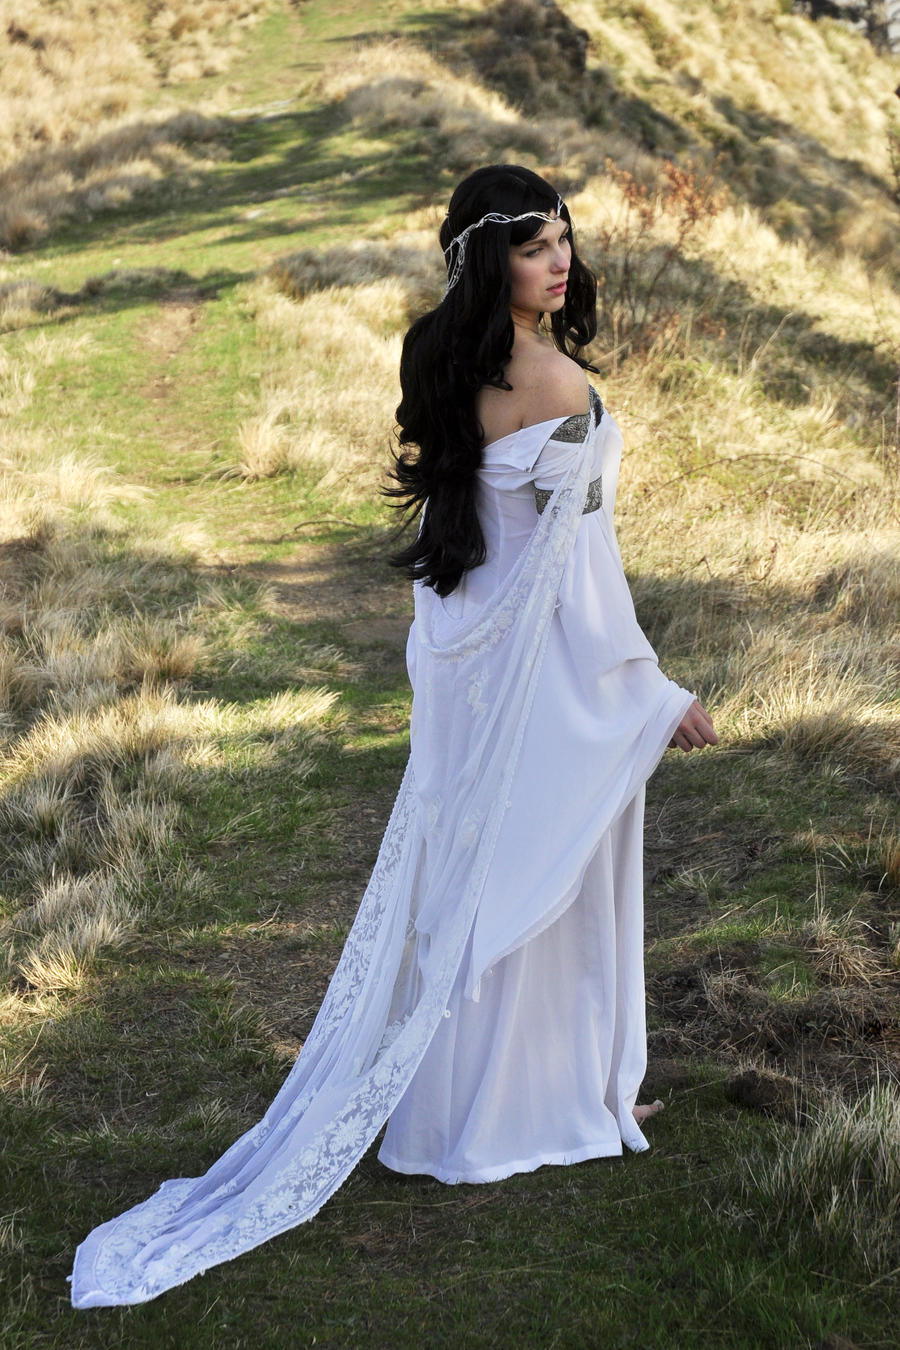 Luthien 15 by jaymasee on deviantart for Elven inspired wedding dresses